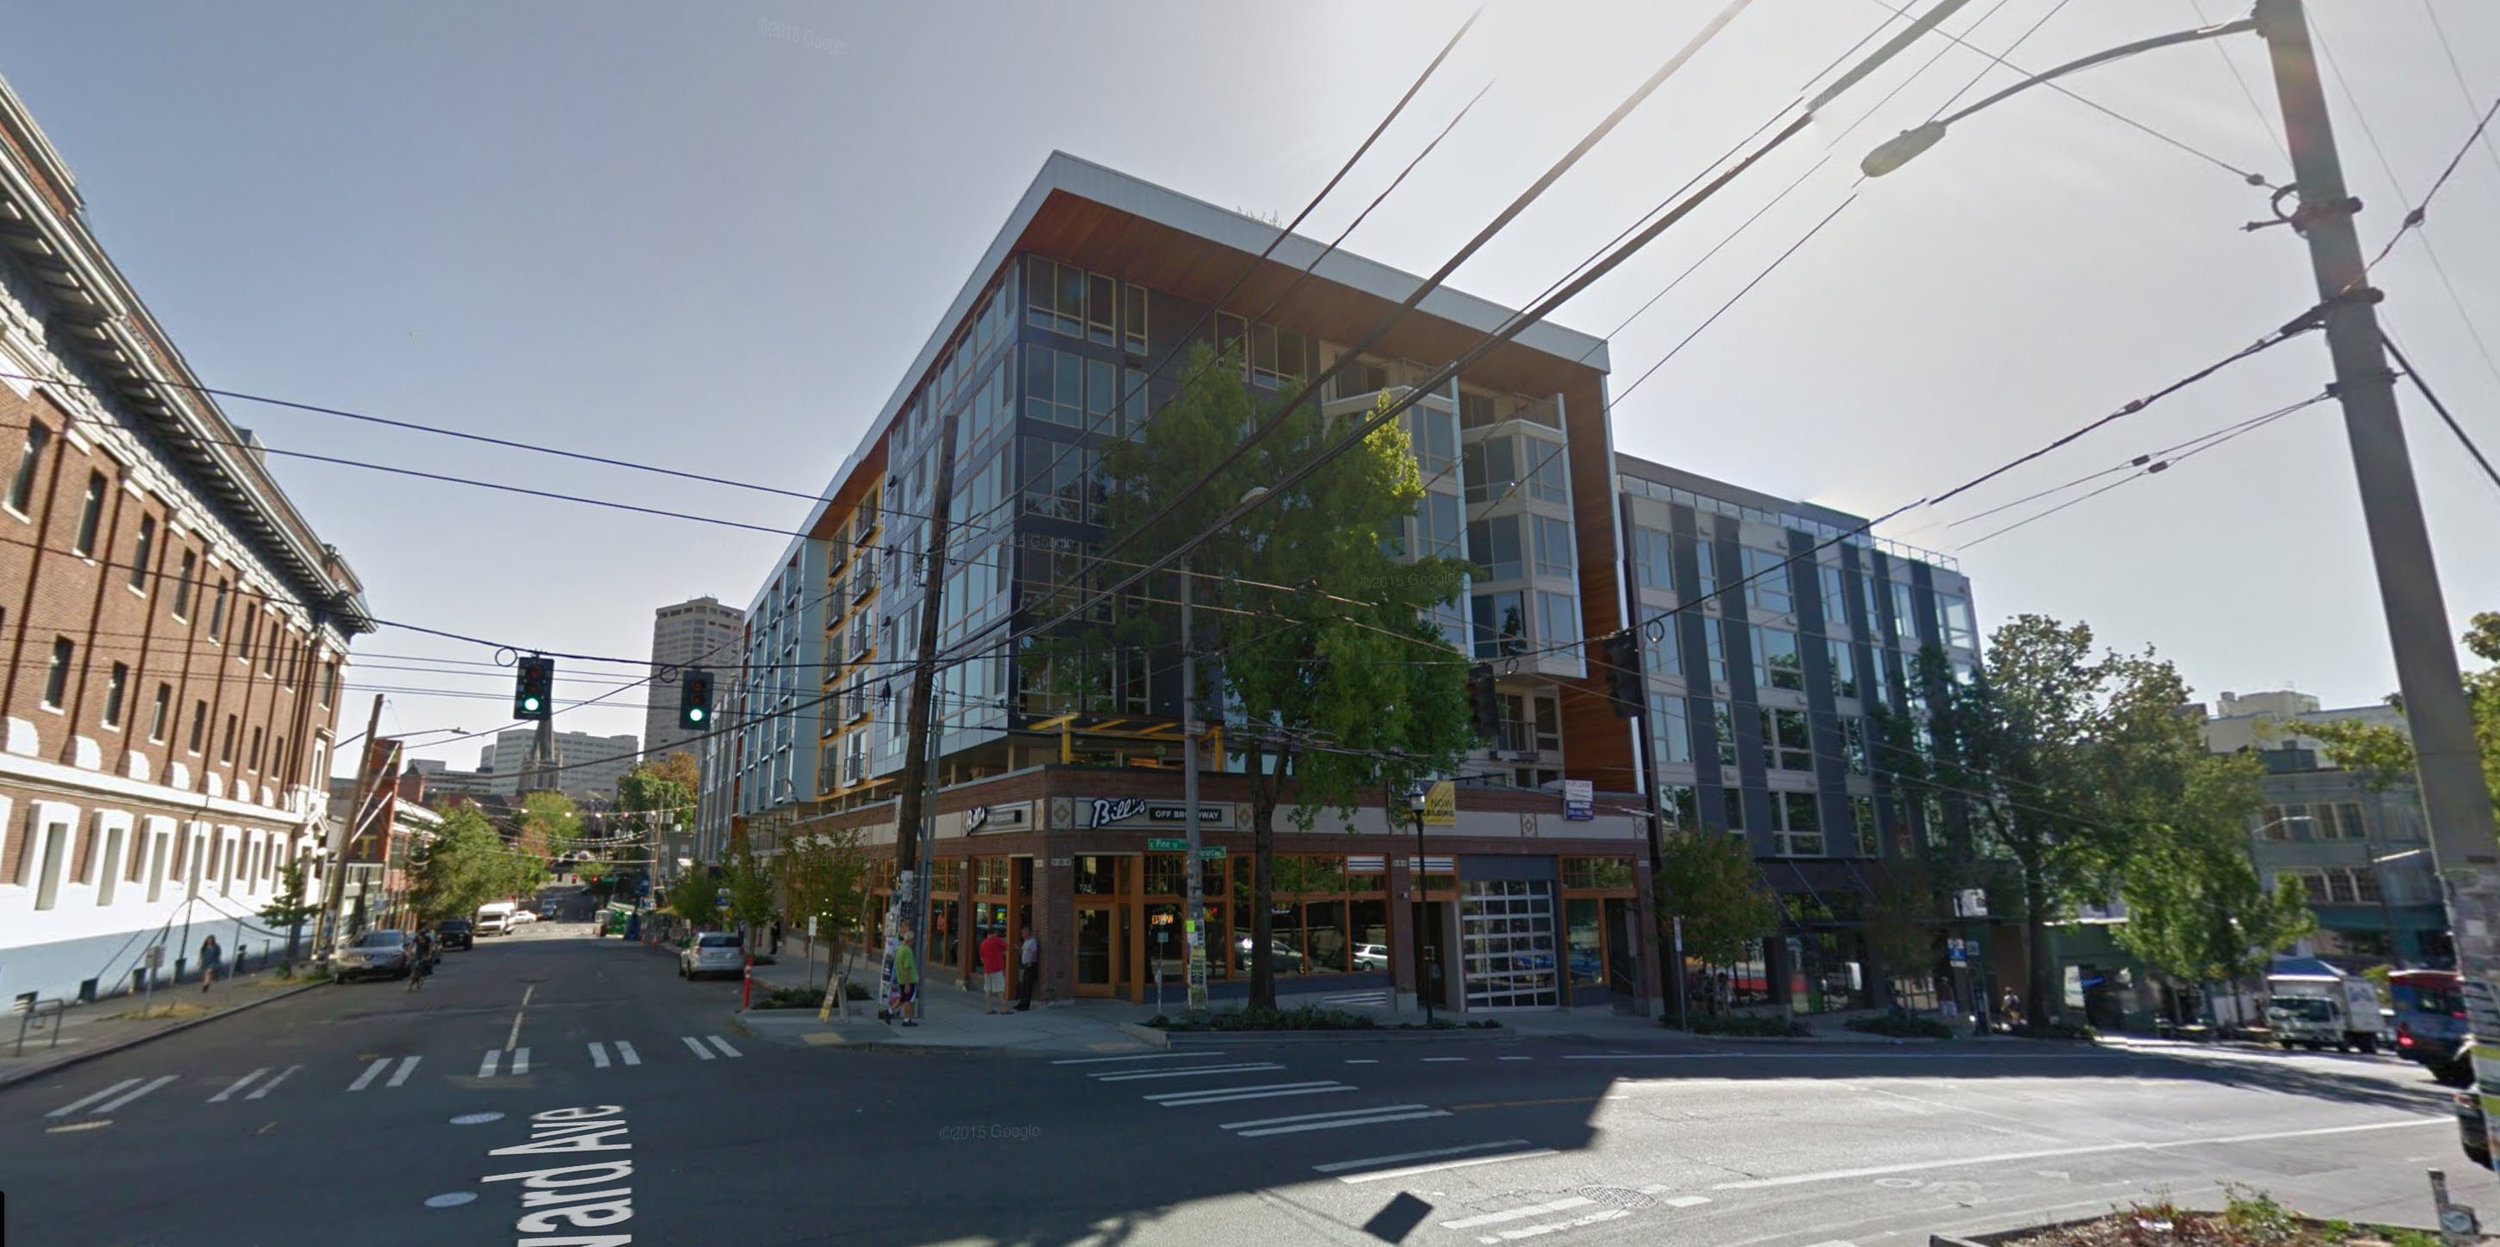 A new building in Seattle's Capitol Hill neighborhood, where the facade was maintained and 5 stories of housing were built above it. The pre-redevelopment business, a bar named Bill's Off Broadway, returned to its location on the ground floor when development was complete.